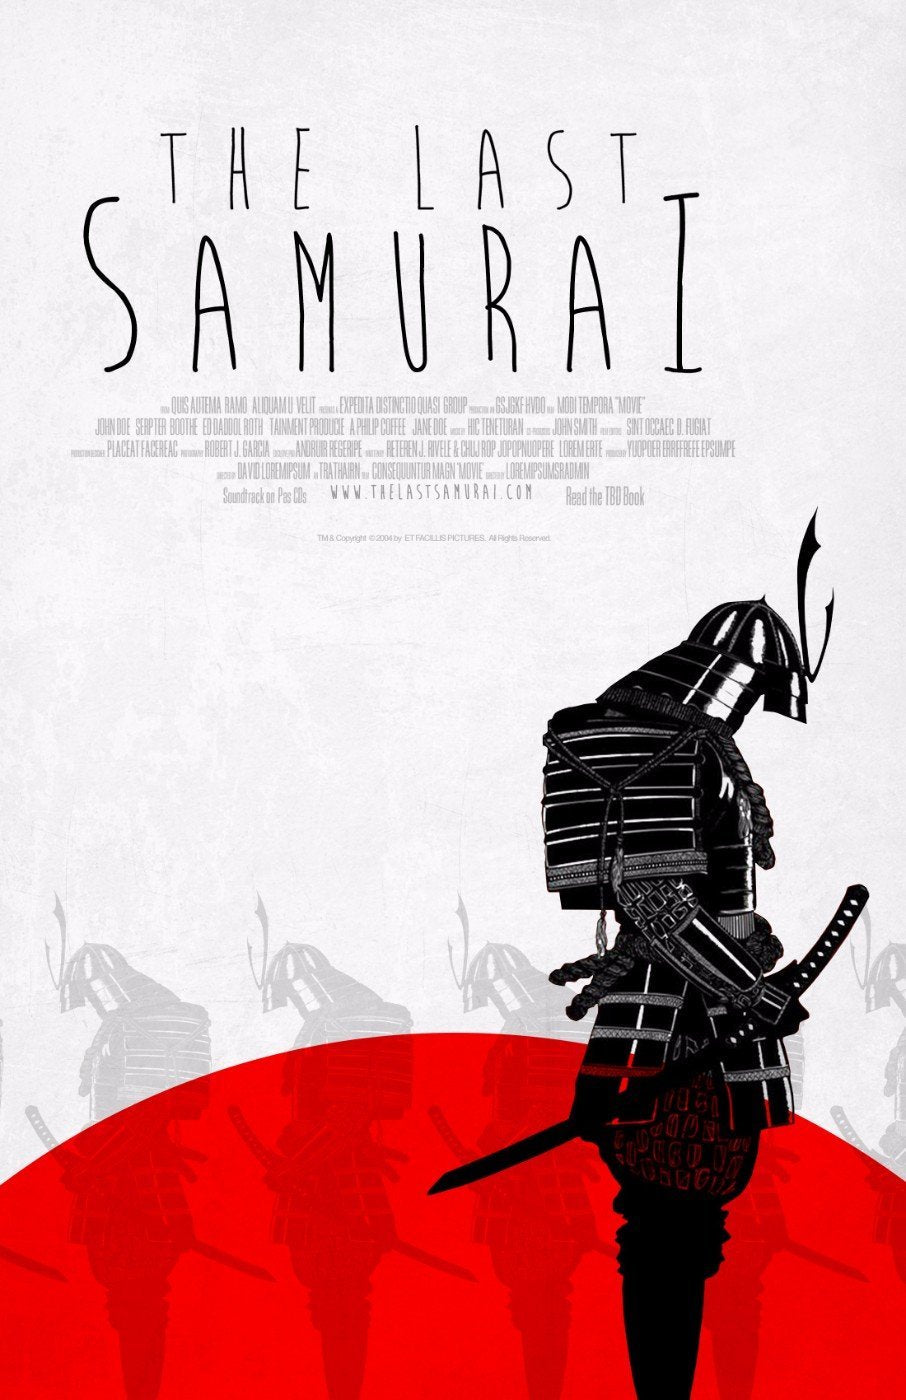 Tallenge hollywood collection movie poster the last samurai large art prints